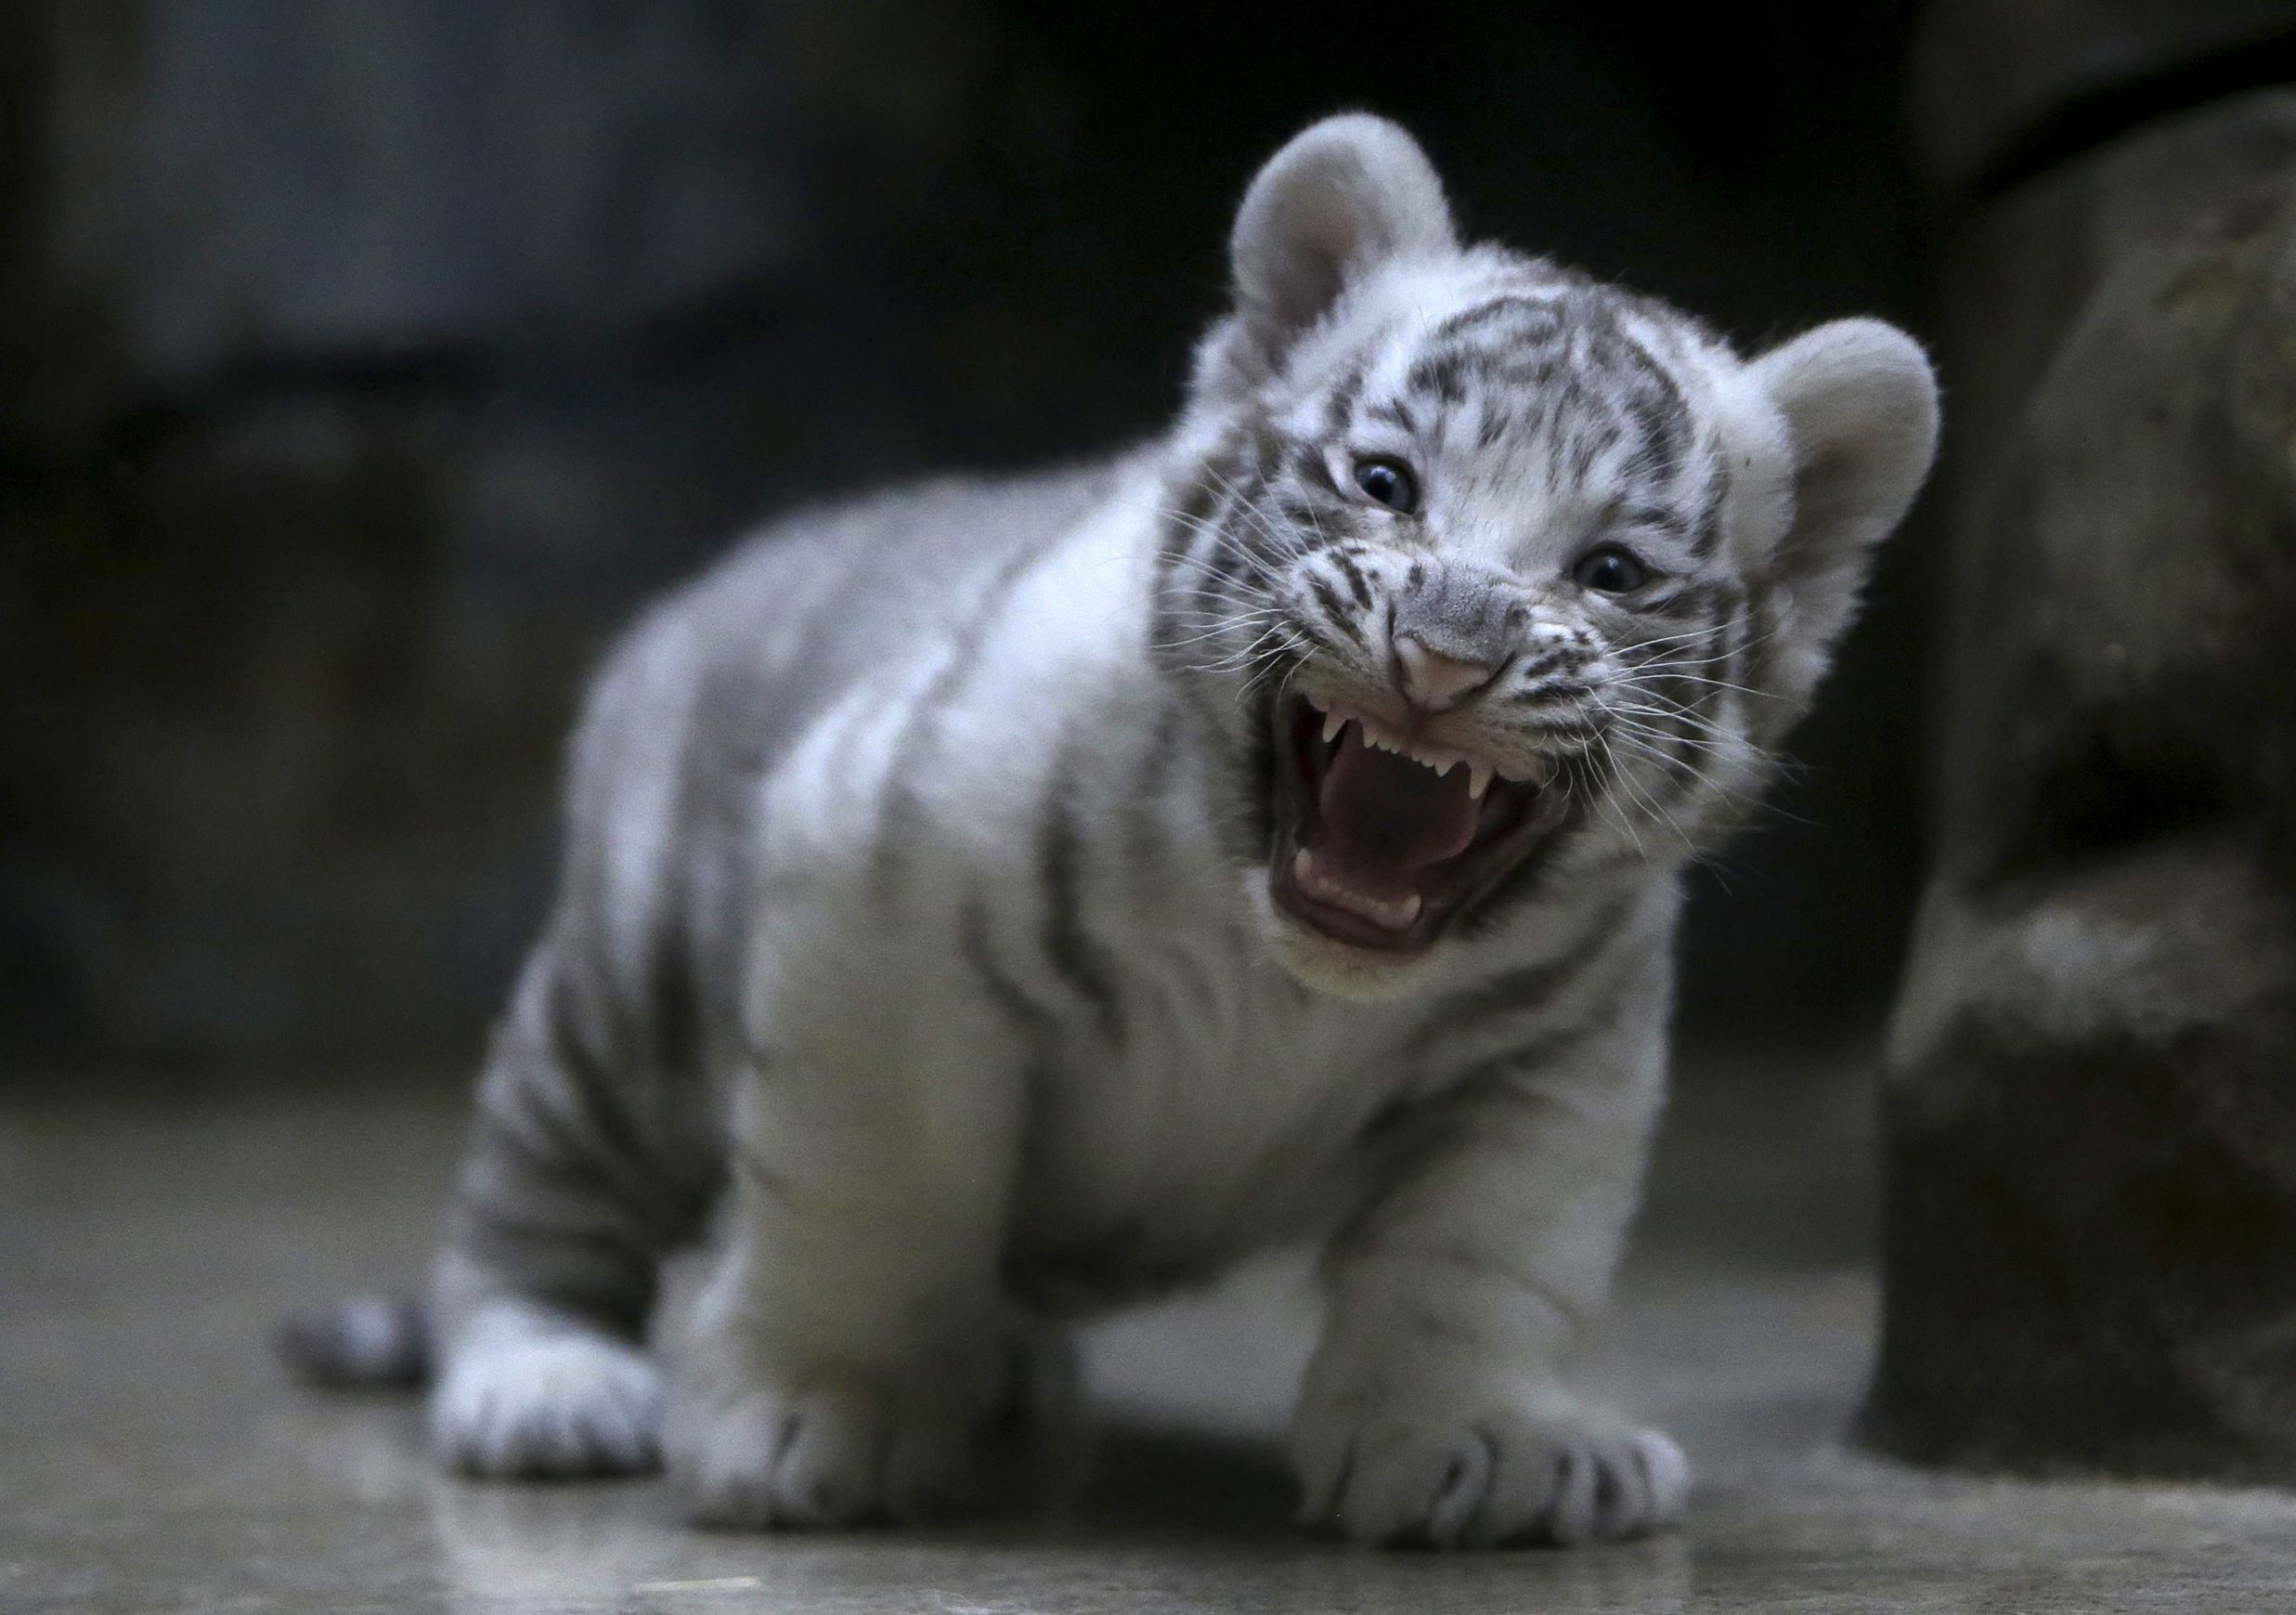 Слайд 45 из 67: A newly born Indian white tiger cub yawns in its enclosure at Liberec Zoo, Czech Republic, April 25, 2016.